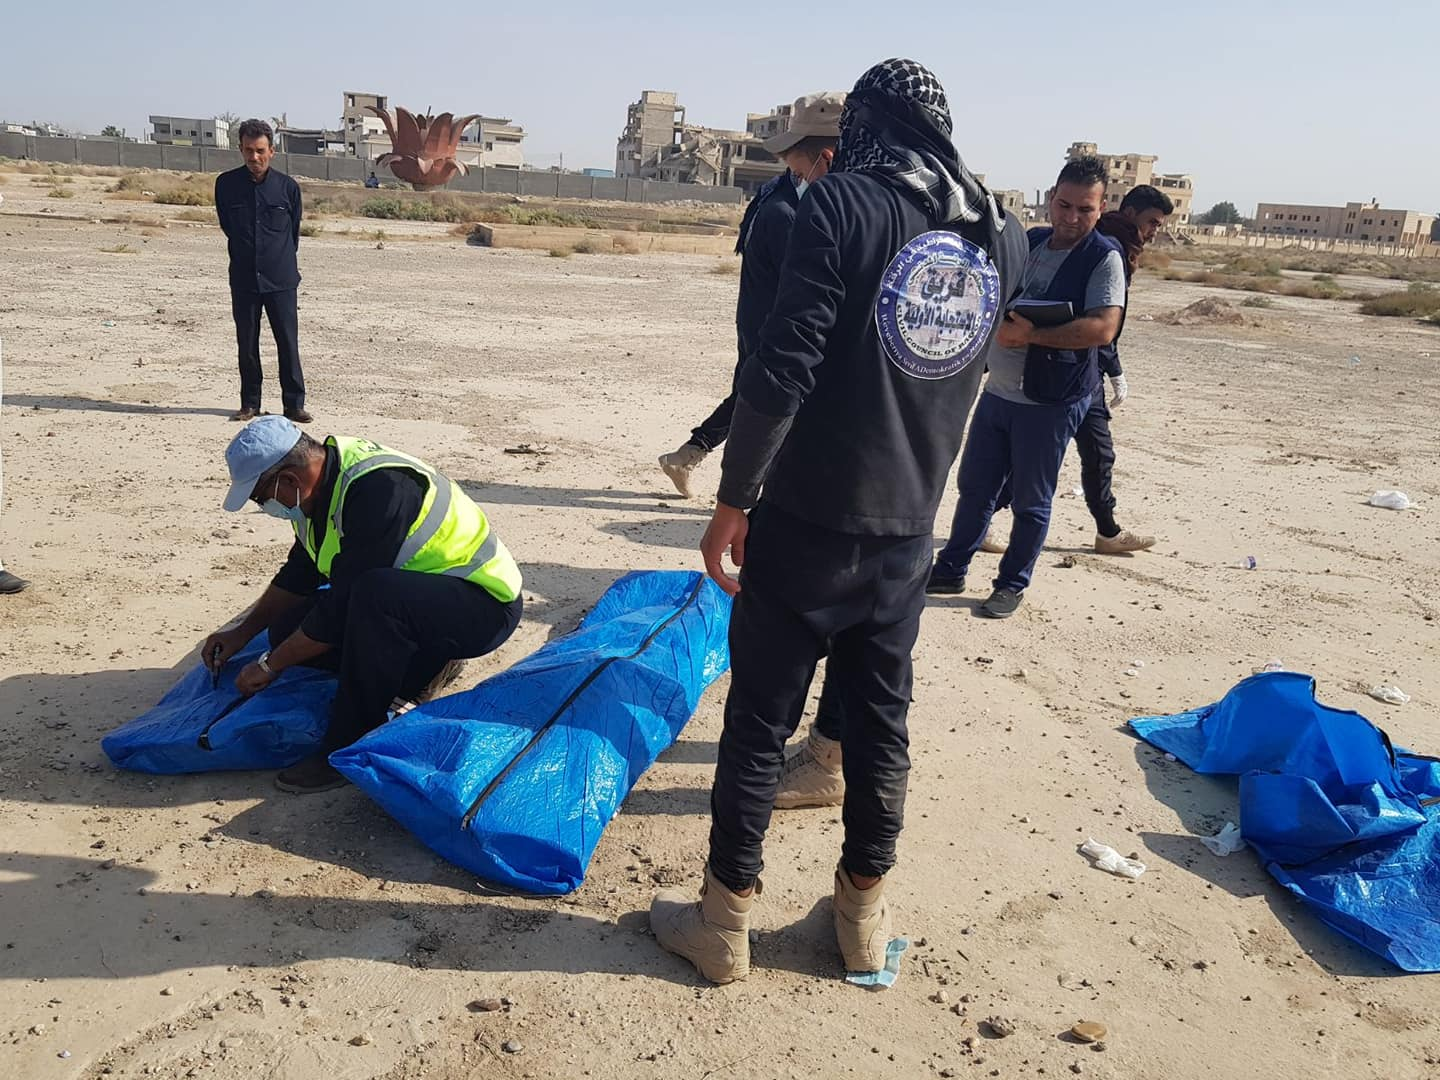 Initial Response Team recovering bodies out of a mass grave in Raqqa (Raqqa Civil Council) - October 5, 2018